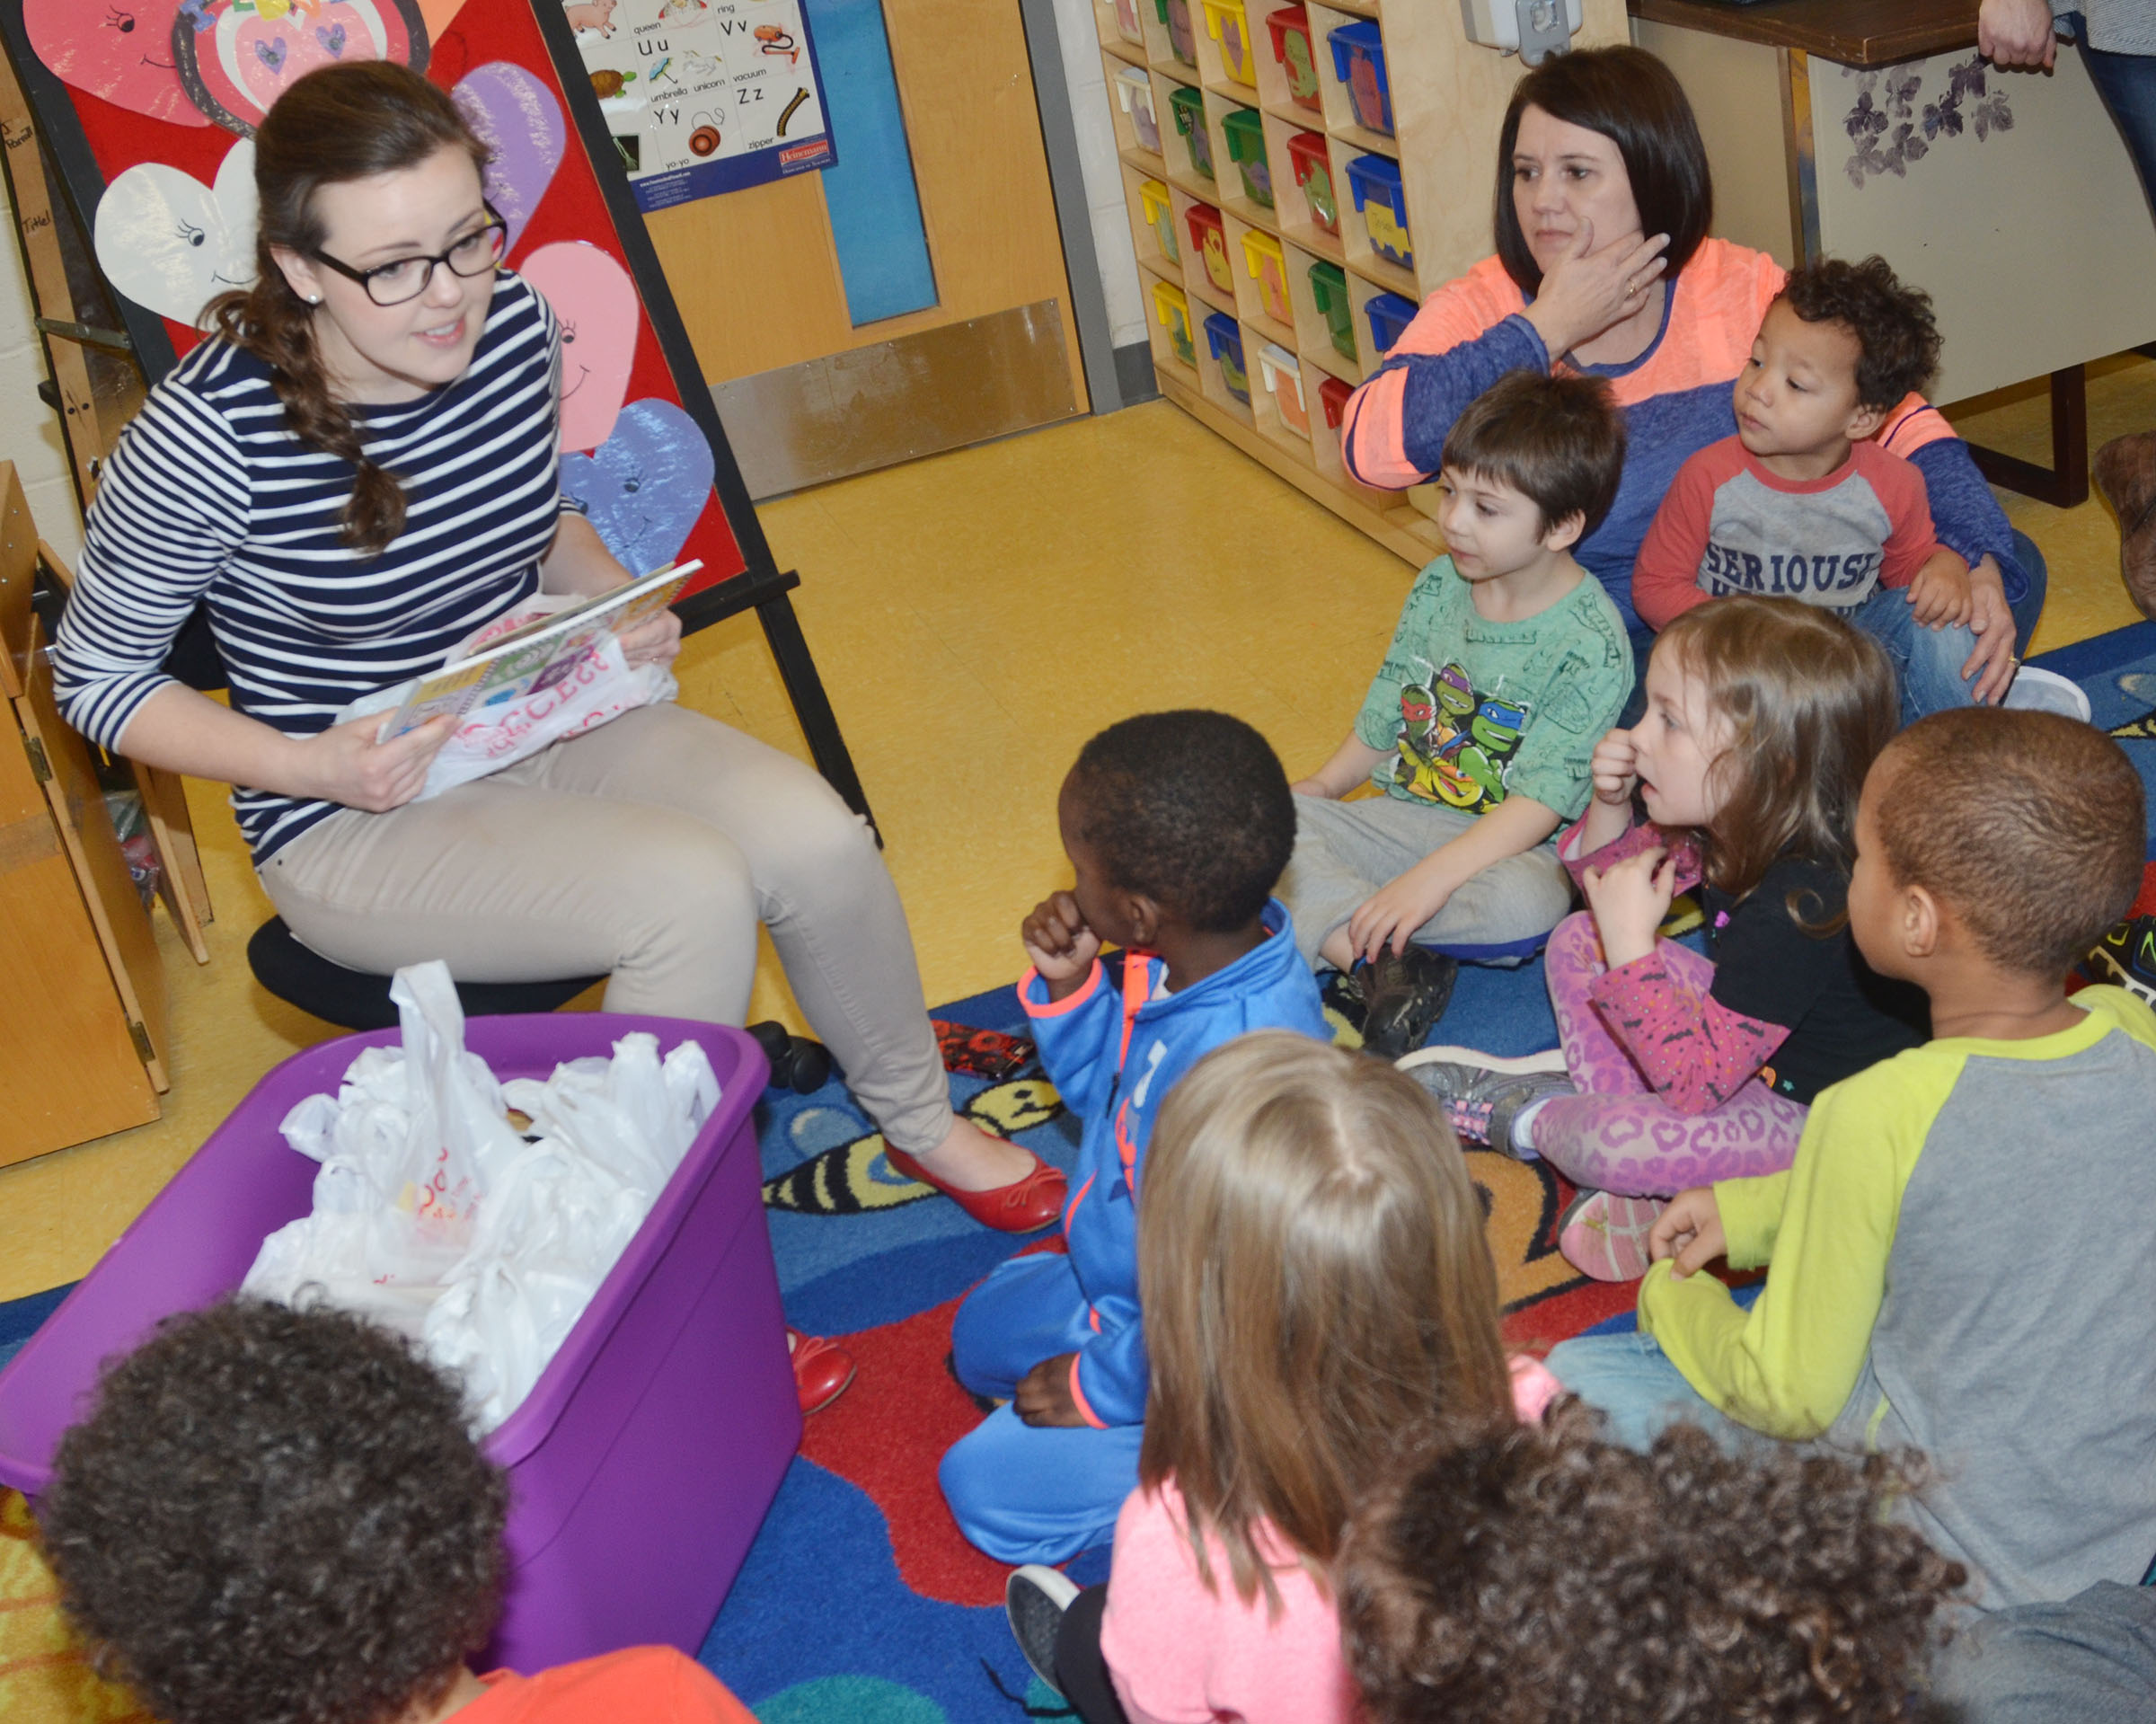 Campbellsville University education student Amanda Hamilton passes out donated books to CES preschool students.